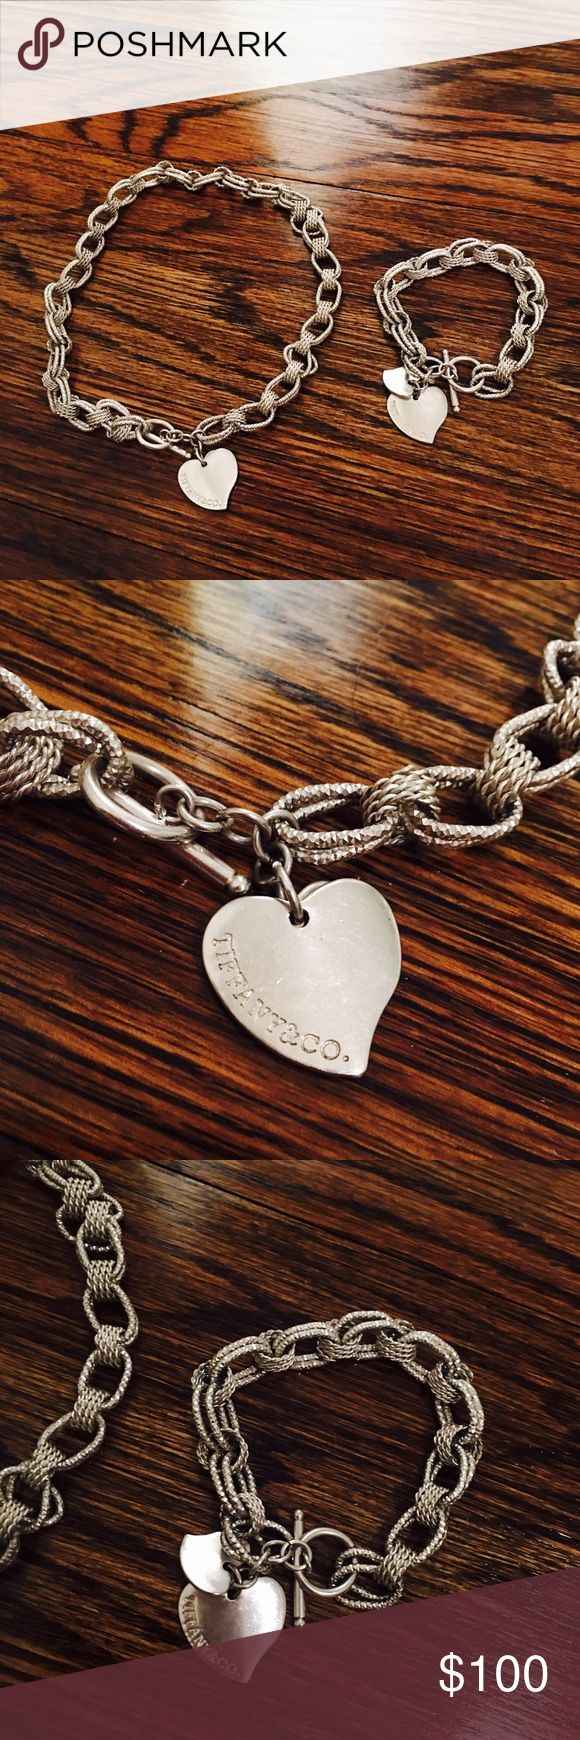 925 TIFFANY & CO 🛍🎉🎀💞💞 I got this off of posh. It has been used few times but I never used it myself. Its 925 silver and in very good condition. Please note that price reflect if its tifanny&co or not so do not ask me that. I need it gone Im not using it. Thank you! Price isnt firm make an offer!! 😘😘😘🎀👍🏻🛍🛍🛍🛍🎉❣️❤️🎉😍 Tiffany & Co. Jewelry